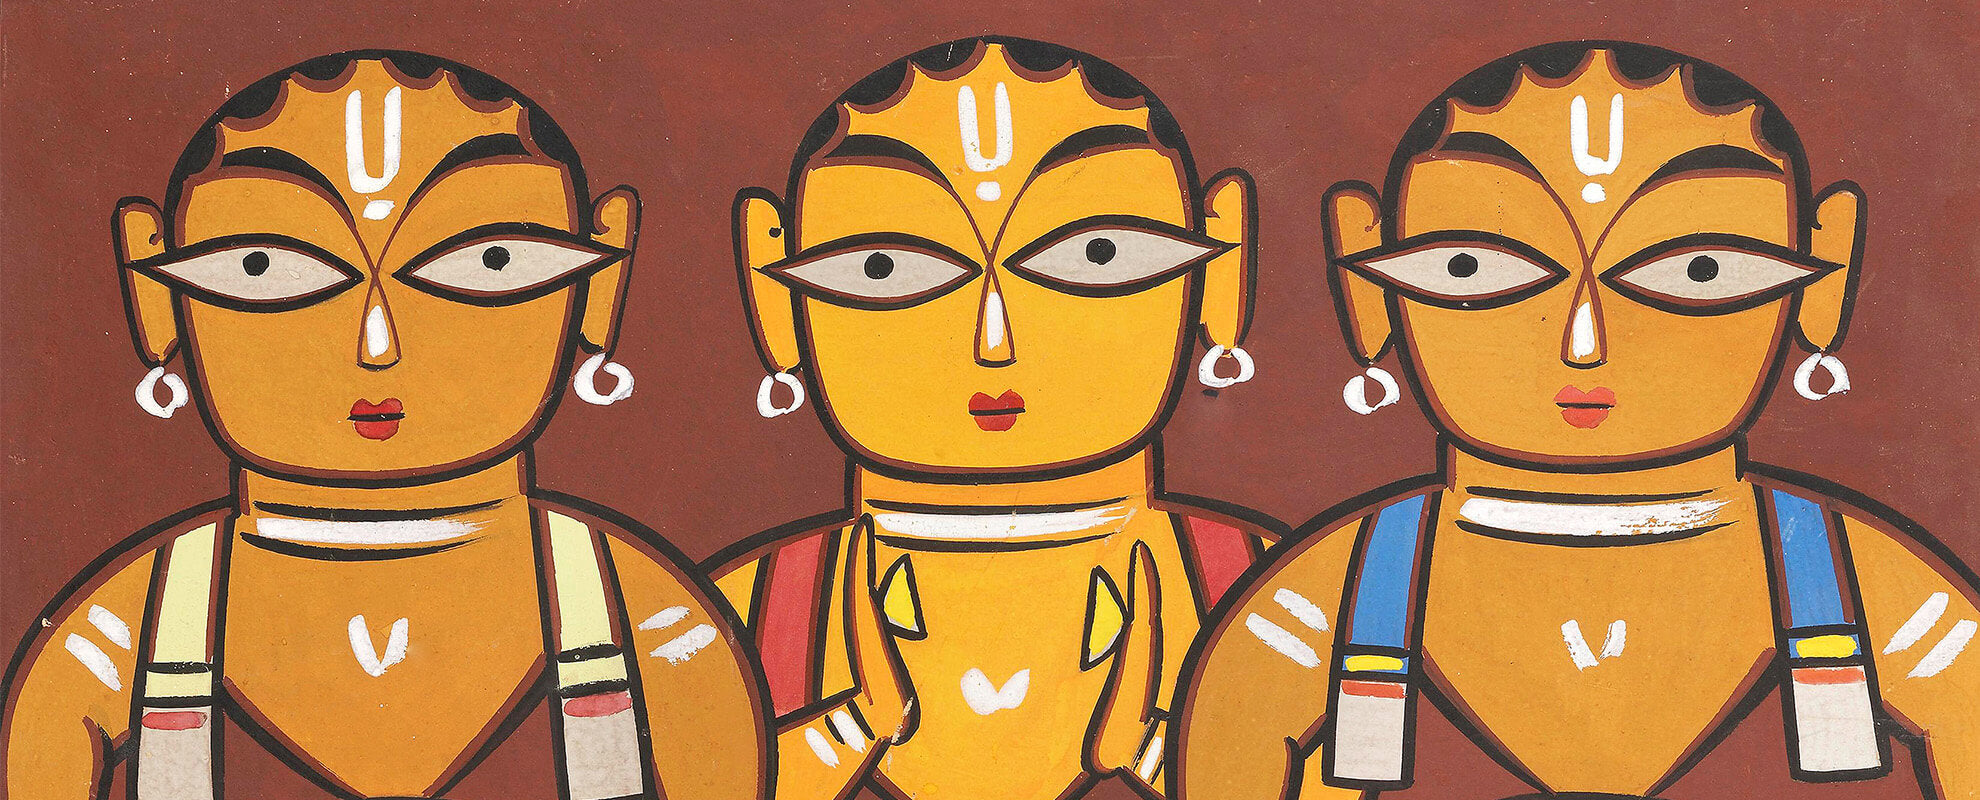 Indian Art — Above 5000 | Buy Posters, Frames, Canvas, Digital Art & Large Size Prints